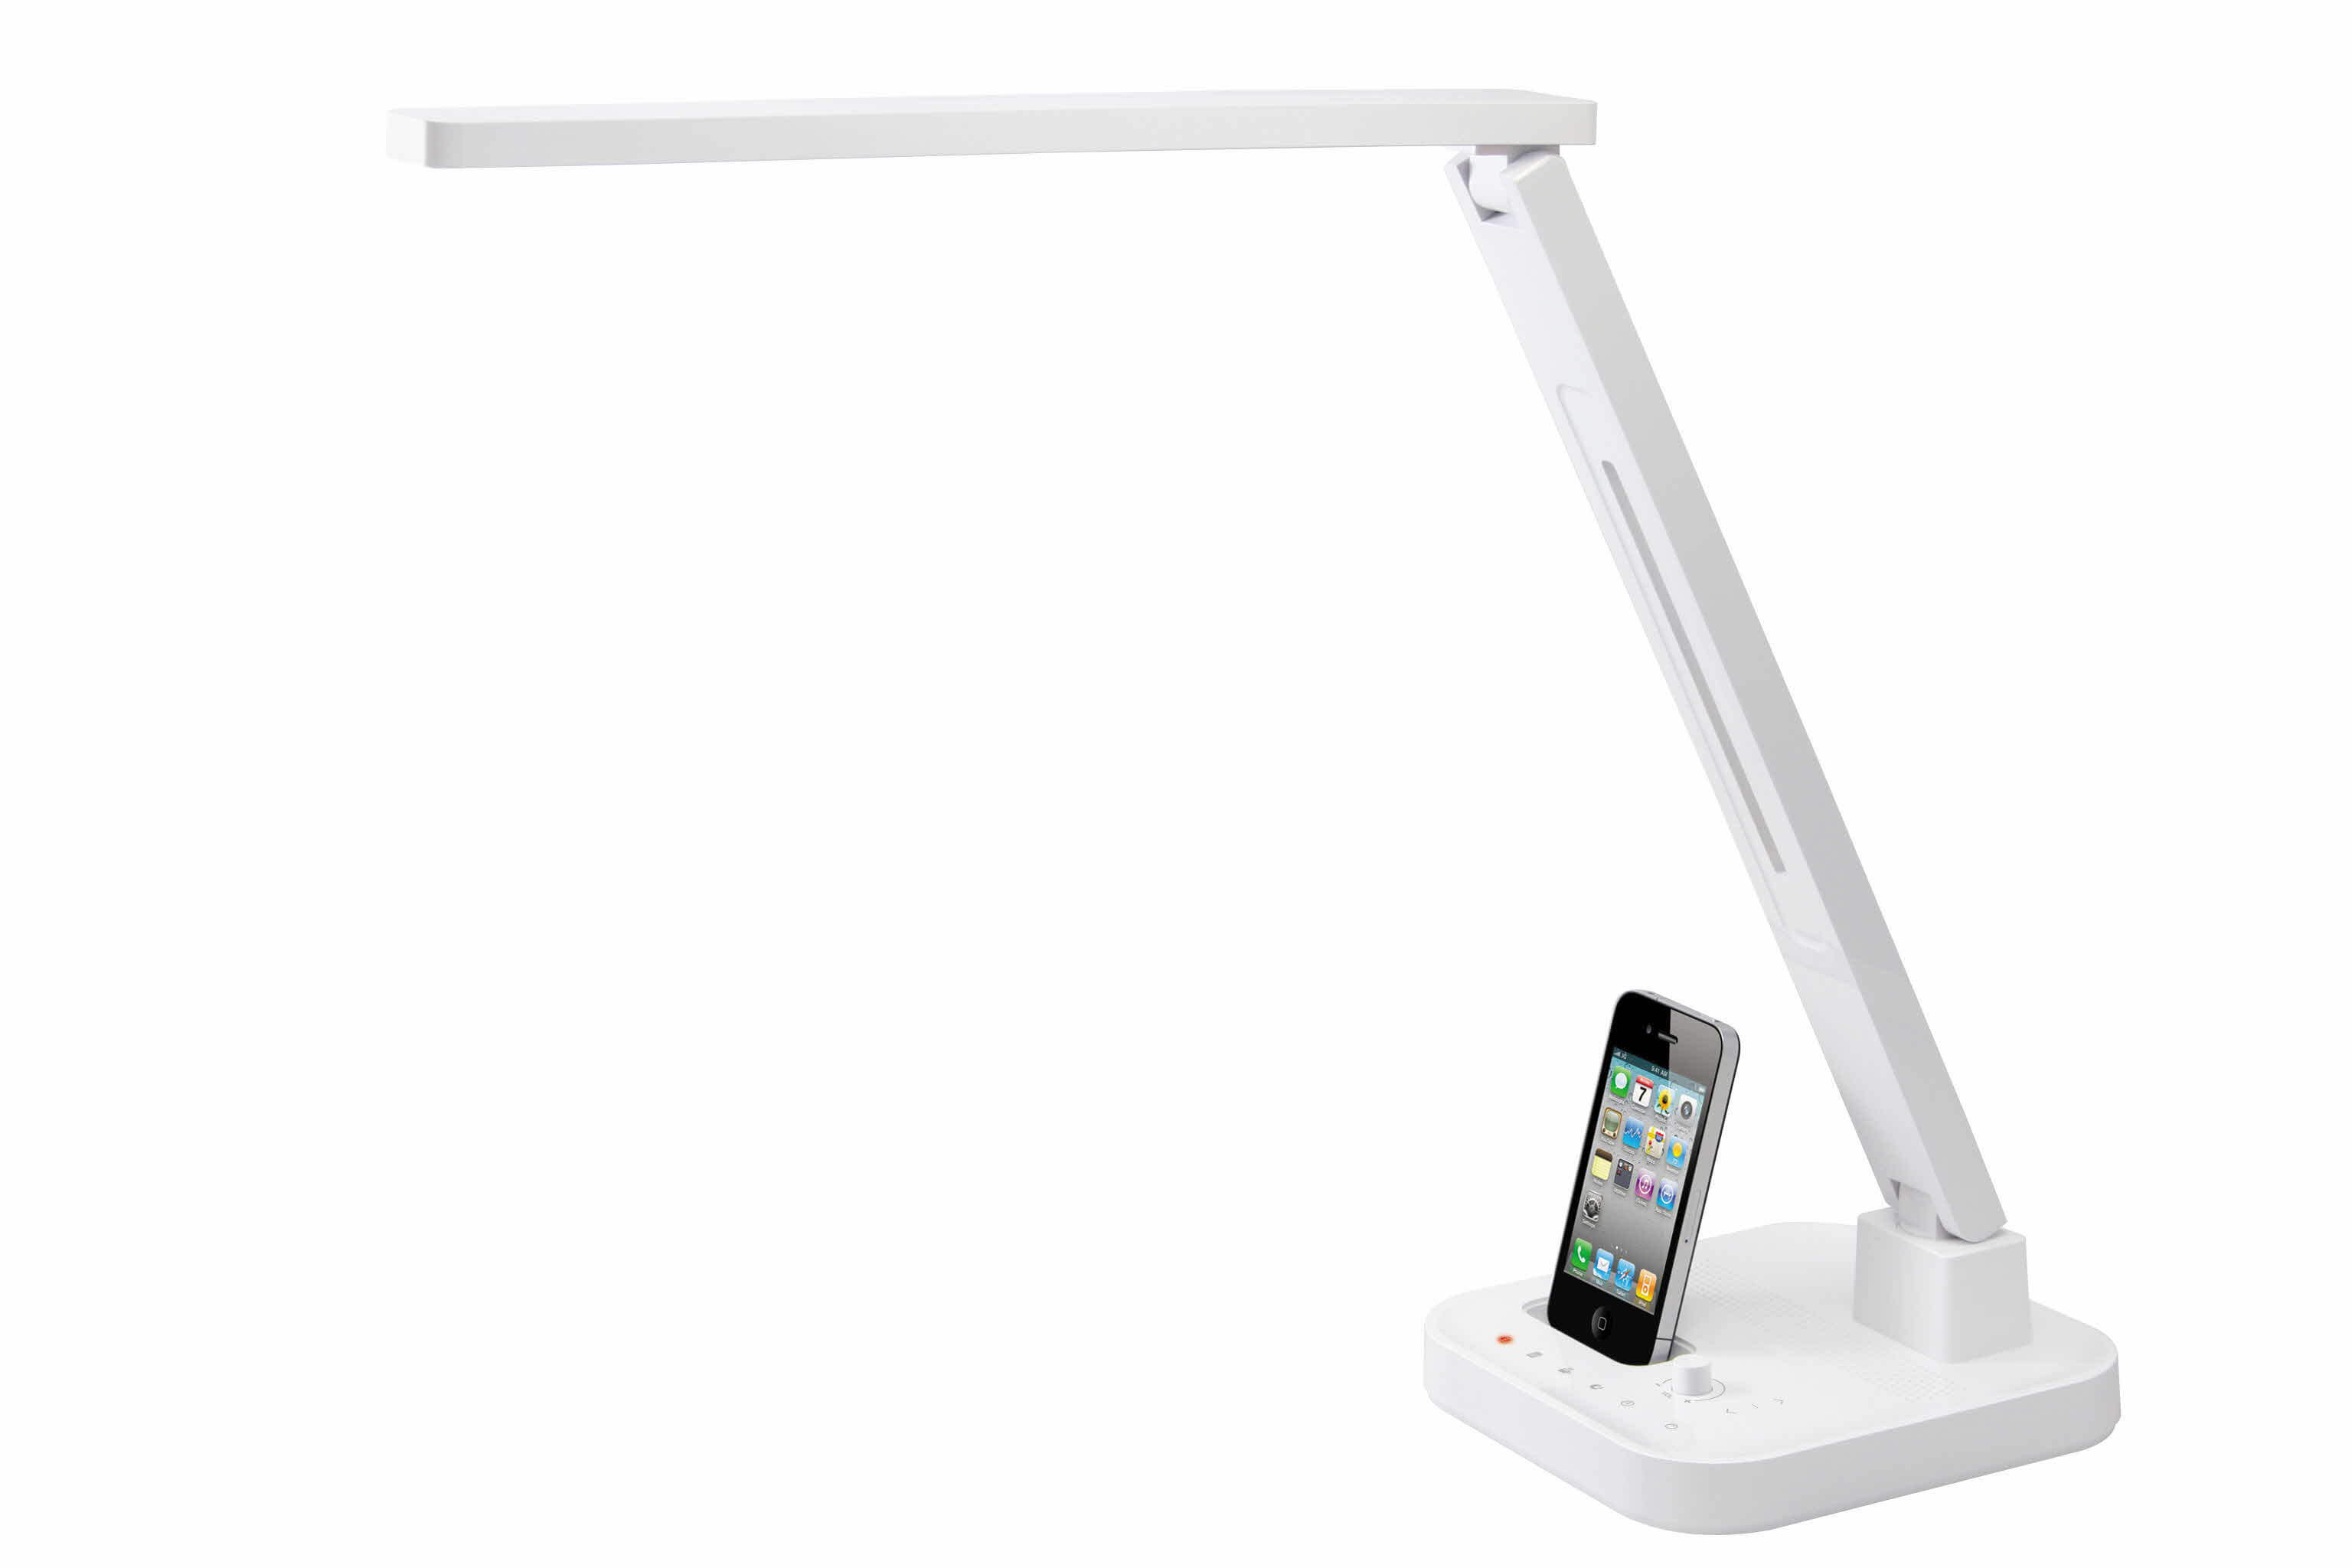 Best ideas about Best Desk Lamps . Save or Pin The Best LED Desk Lamps 2018 Now.